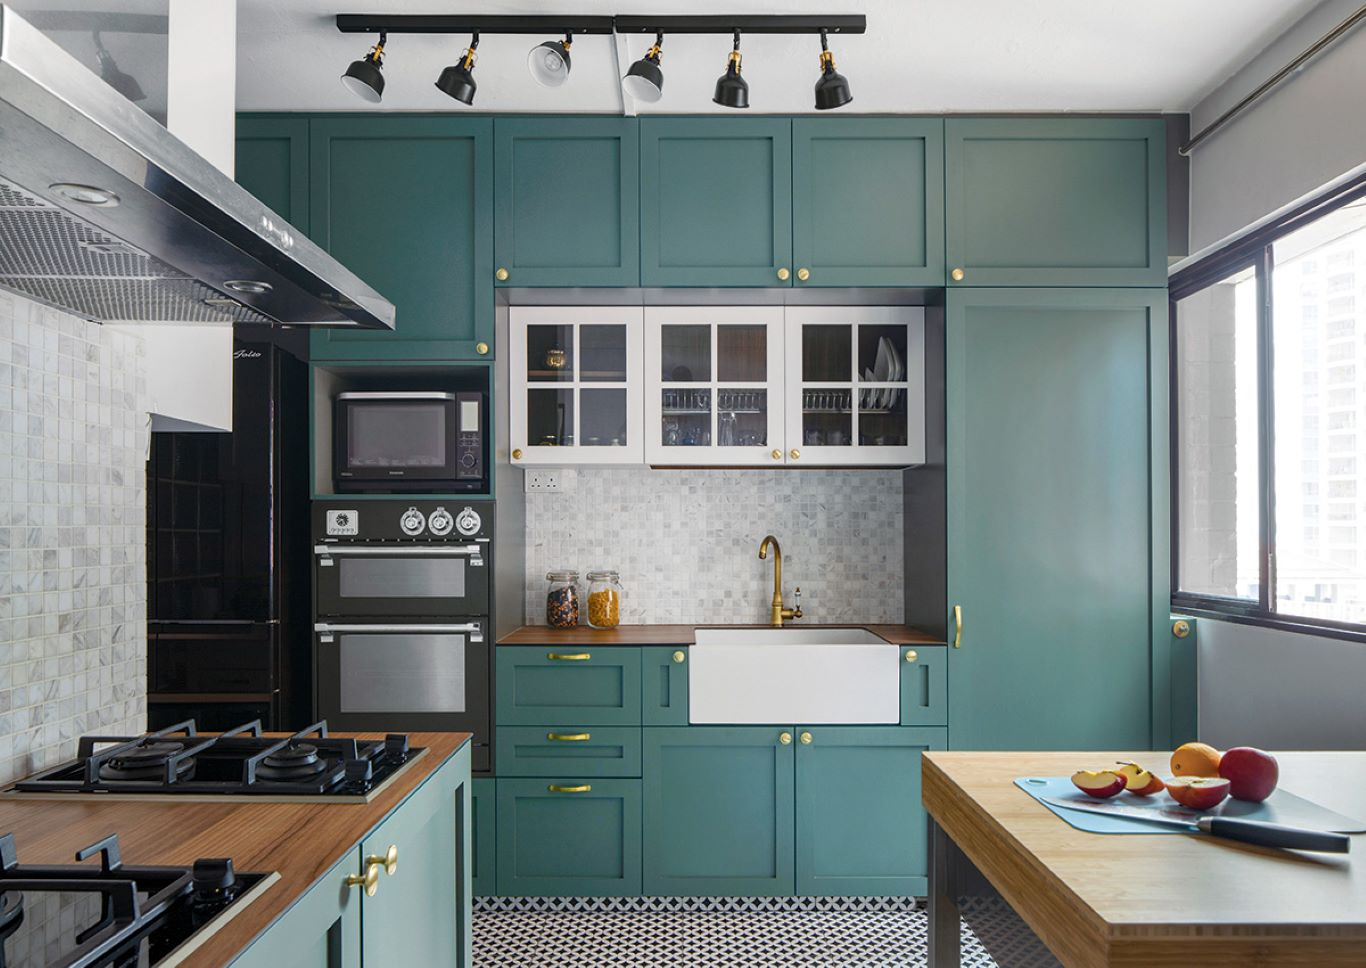 Kitchen cabinets in dark teal paired with geometric patterned flooring and wooden countertops